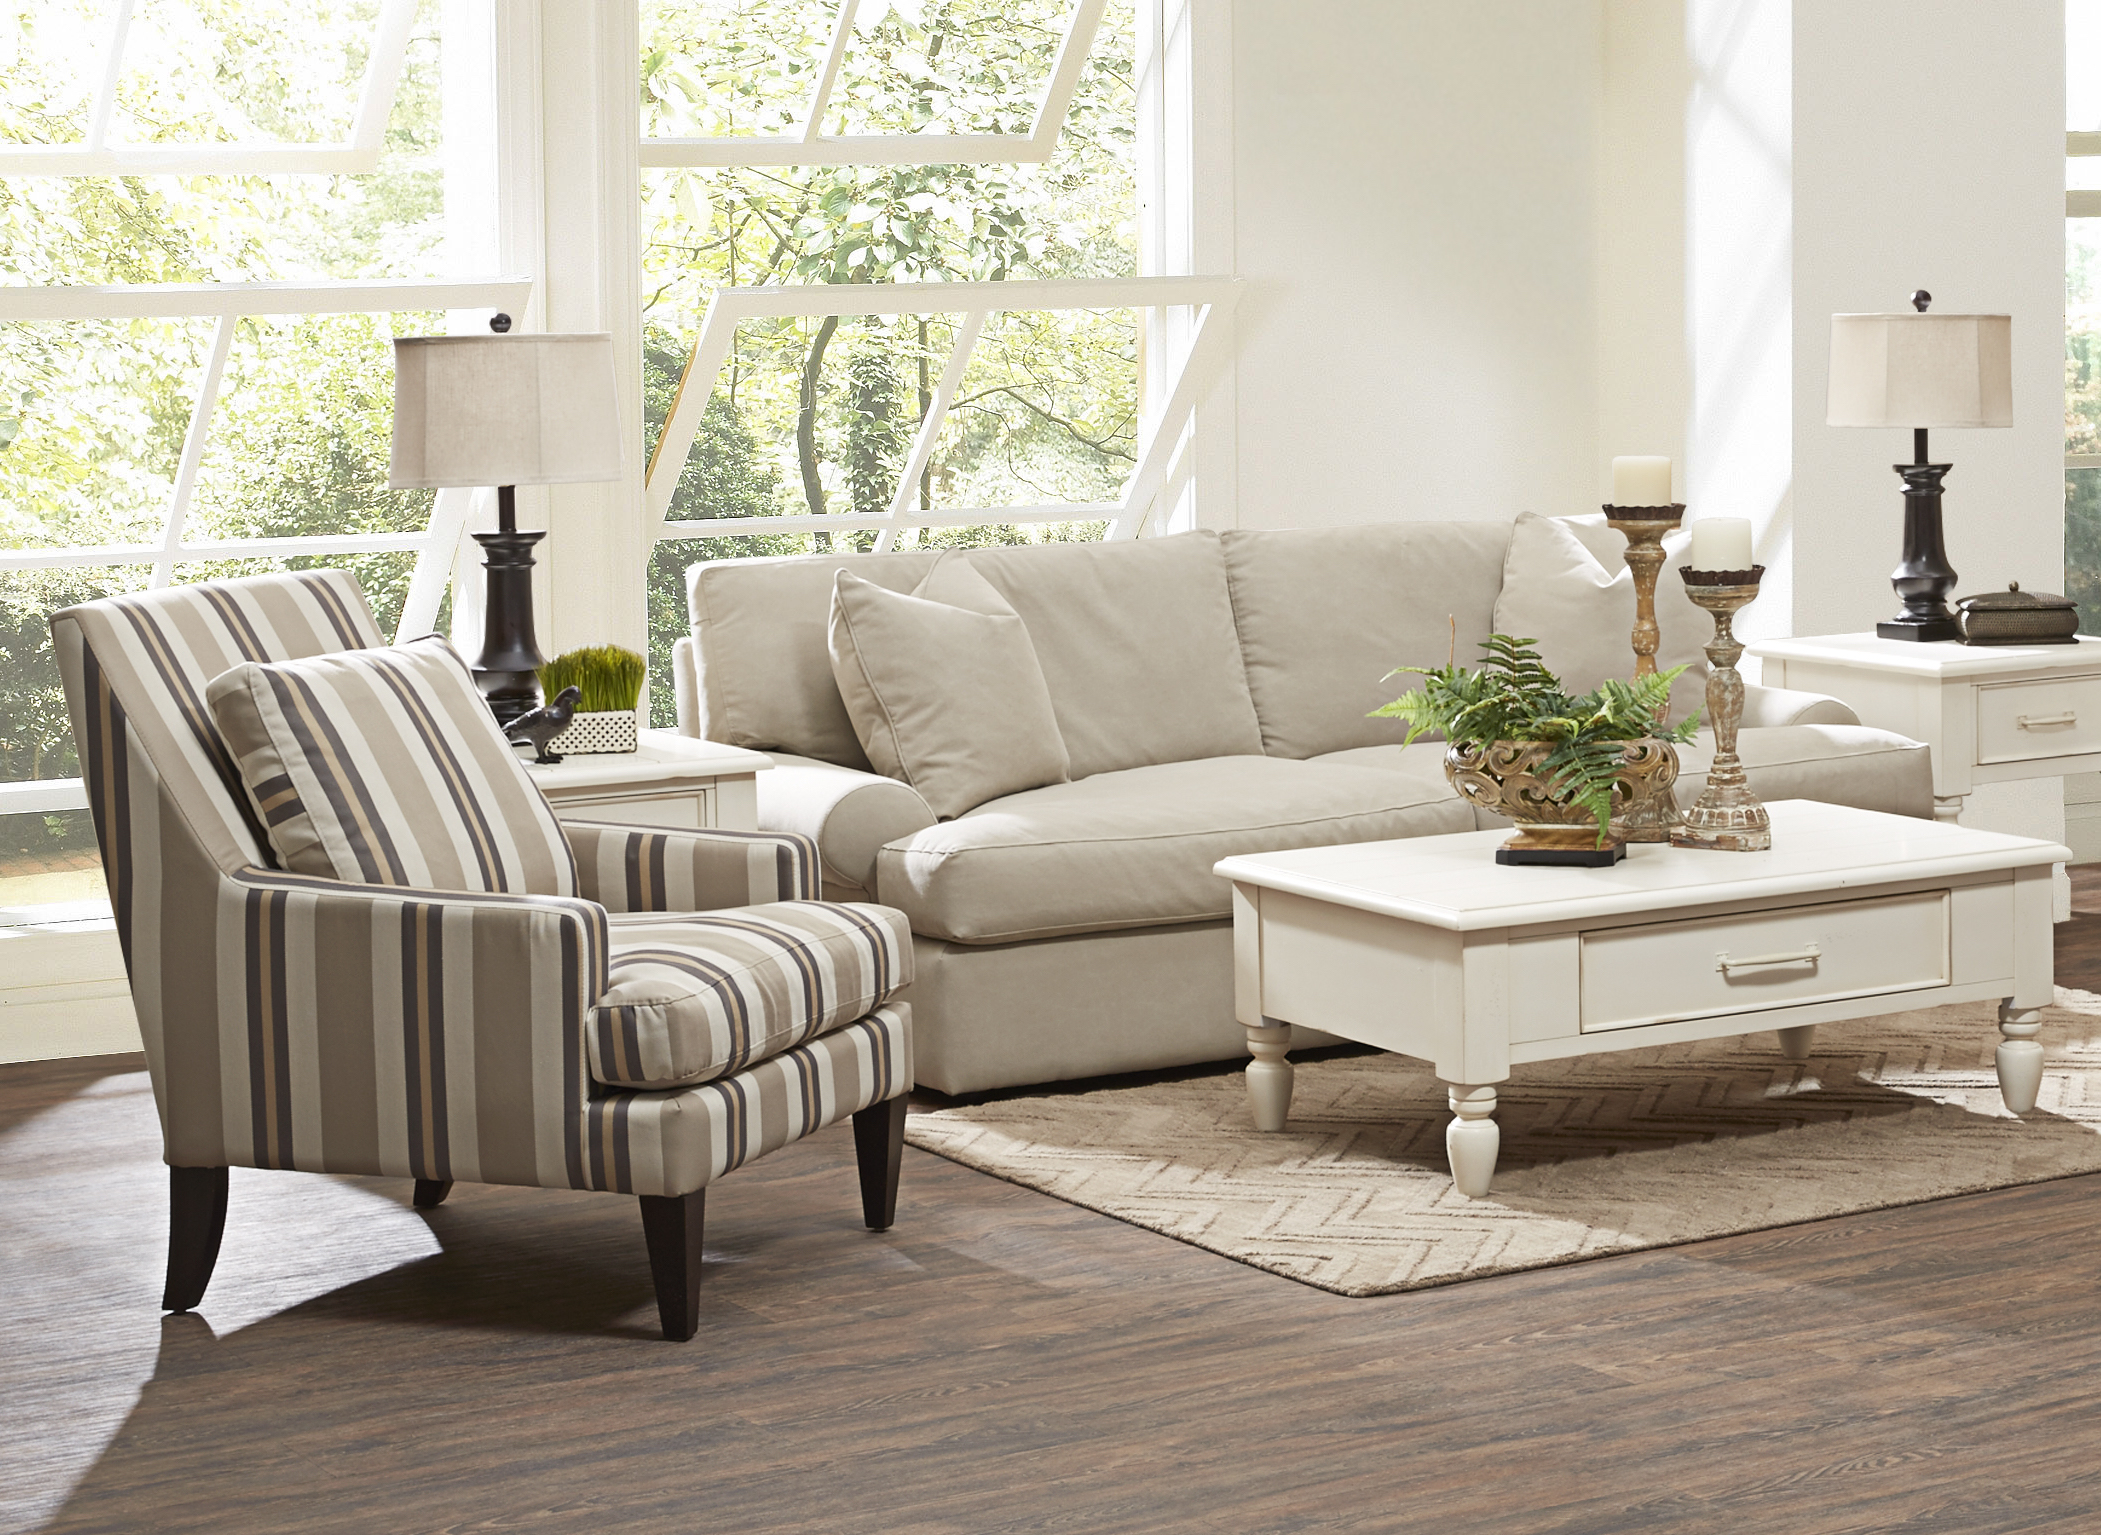 Adelyn D42800 Sofa Collection   Hundreds Of Fabrics And Colors. By Klaussner